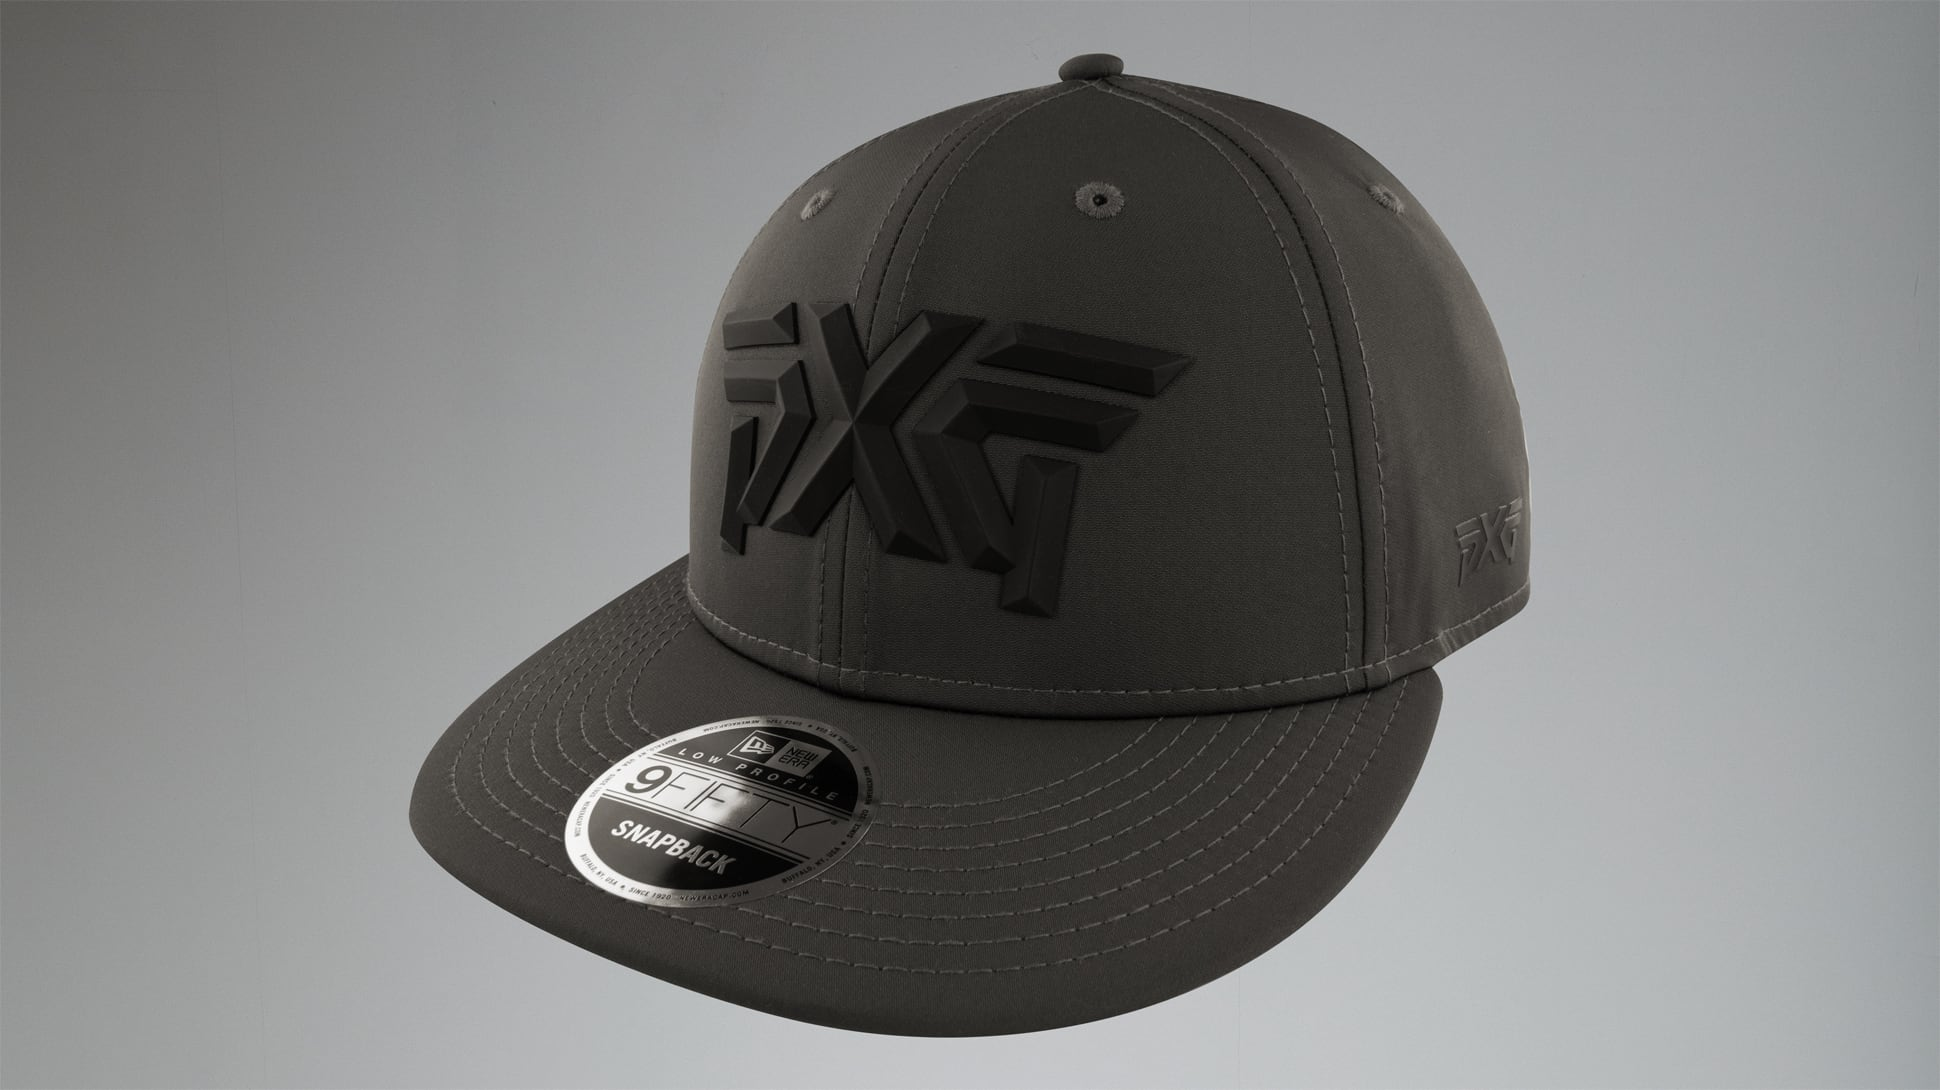 Faceted Logo 9FIFTY Low Profile Snapback Cap Image 0